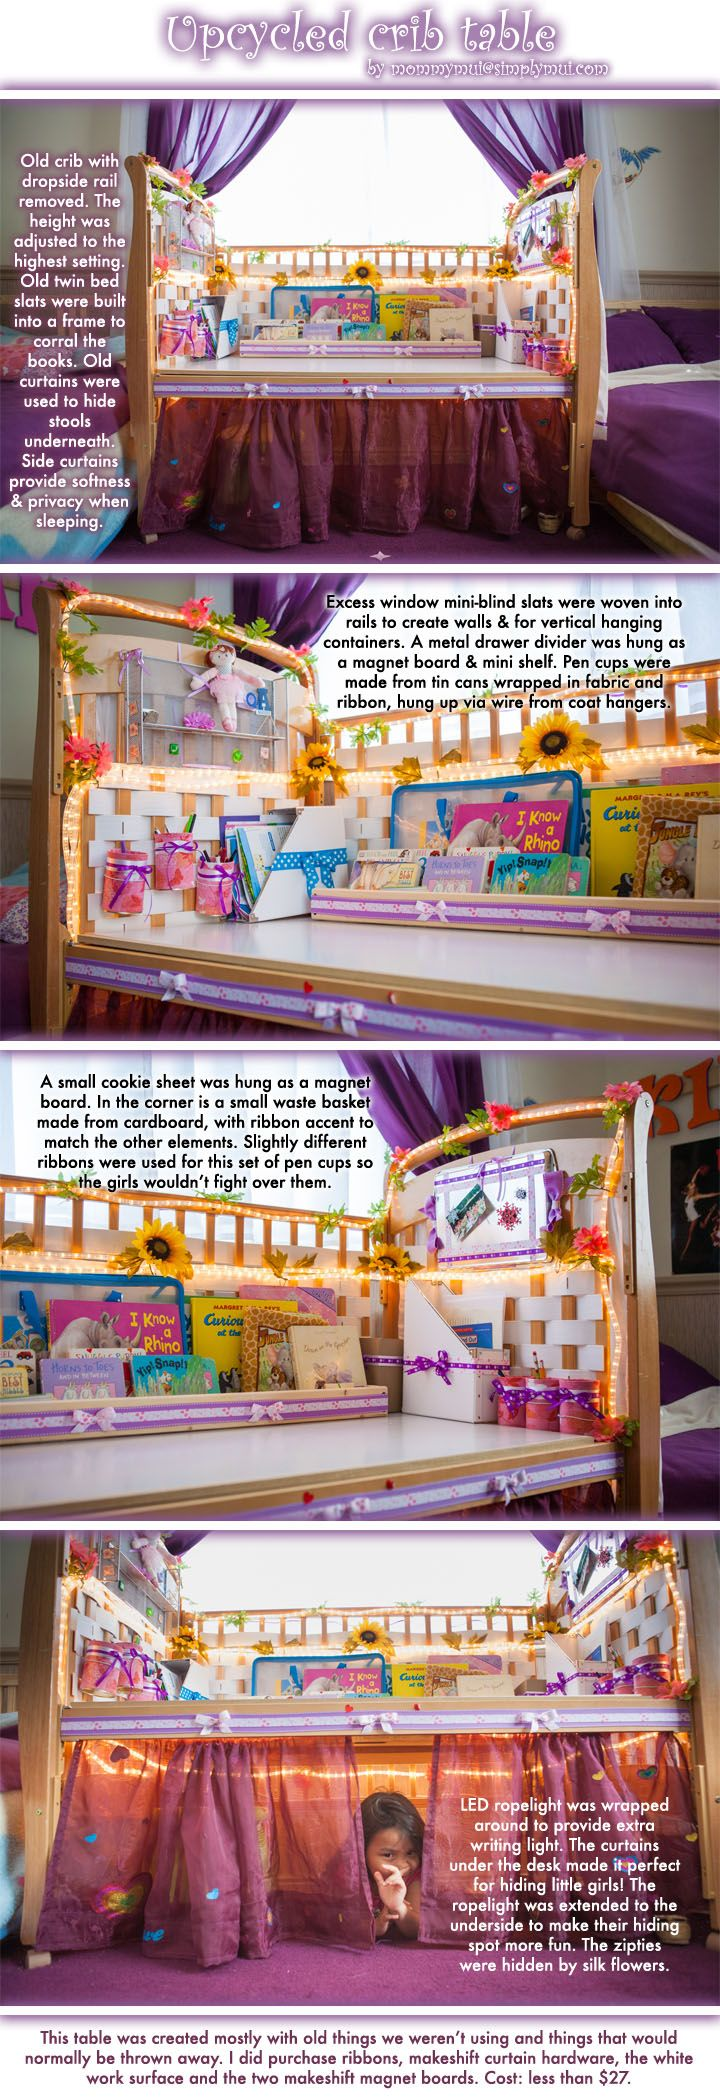 Old crib upcycled into a girls' workstation. Inspired by http://alittlelearningfortwo.blogspot.com/2011/08/repurposed-cot.html